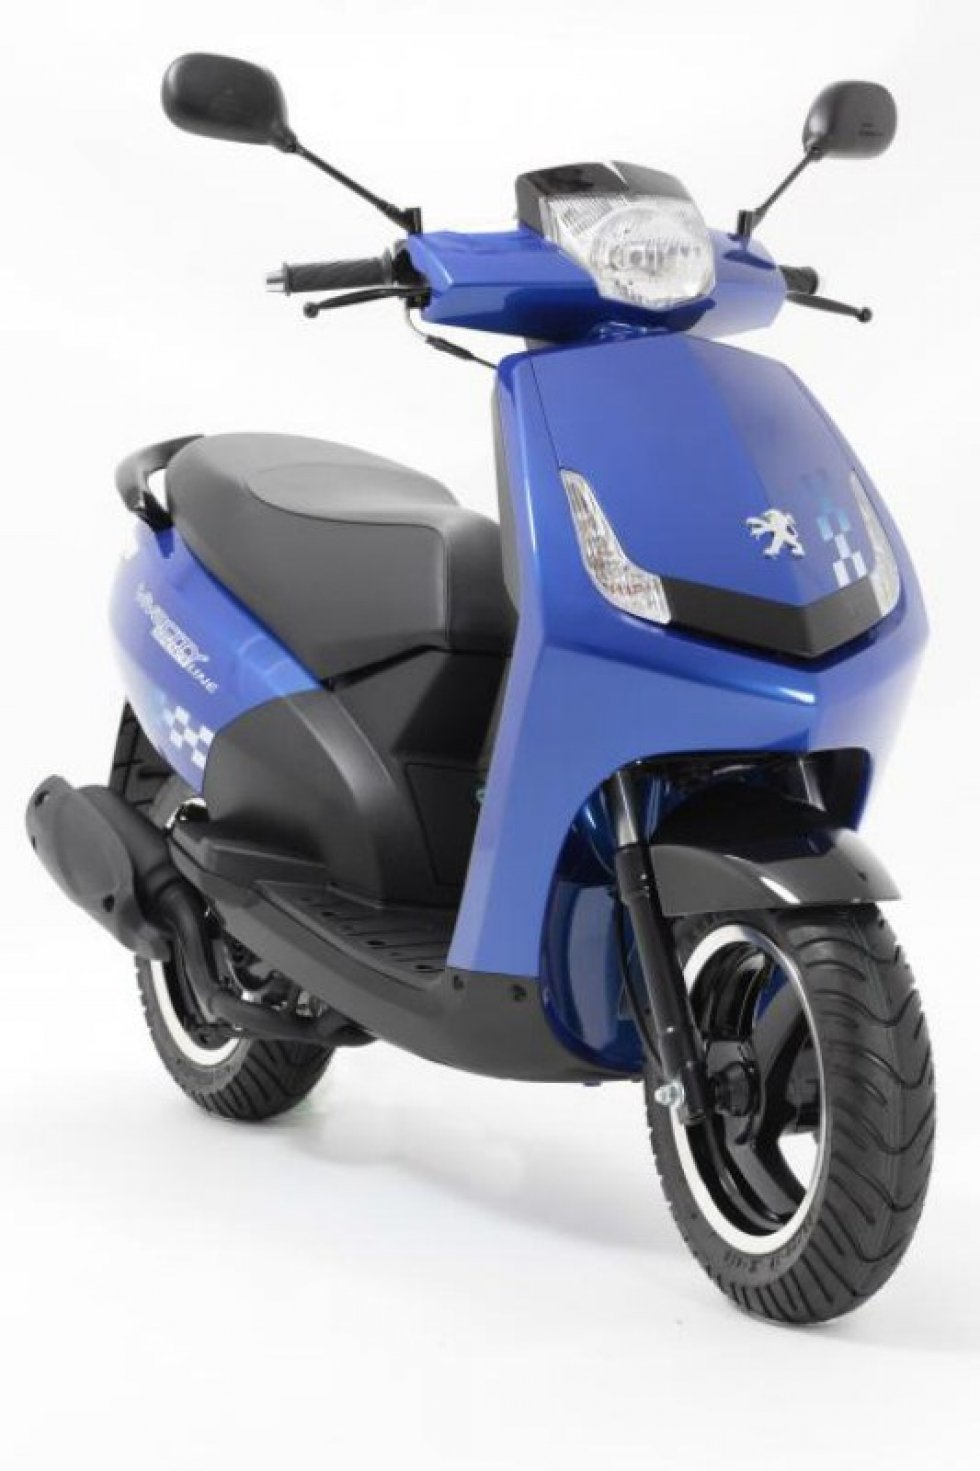 pin scooter peugeot vivacity 50cc compact moto e usato in on pinterest. Black Bedroom Furniture Sets. Home Design Ideas